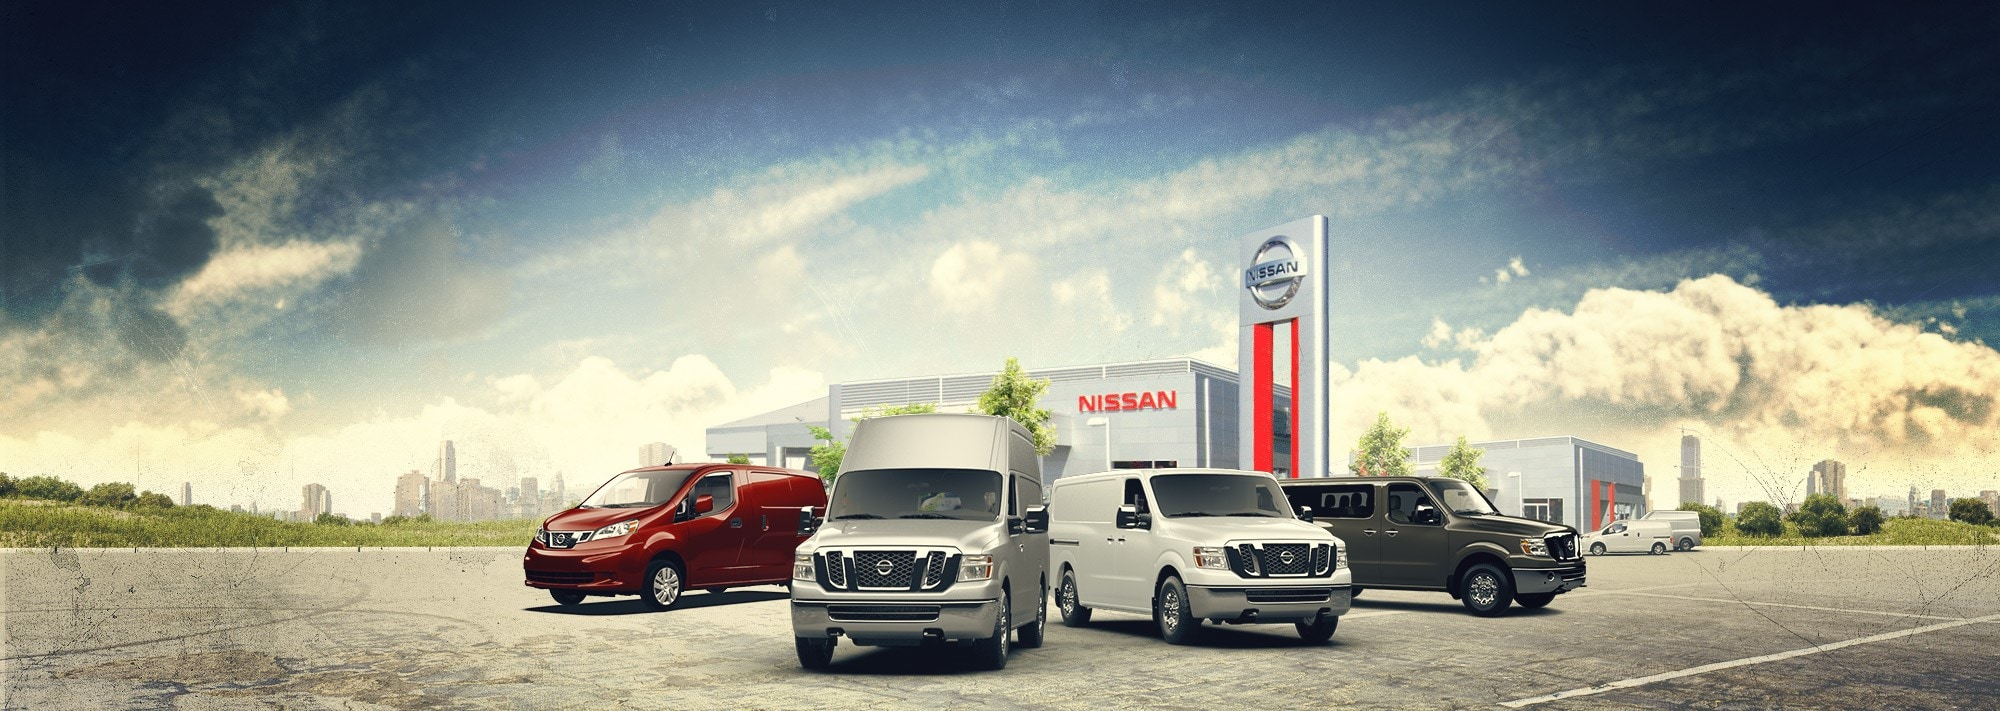 nissan-commercial-vehicles-davie-fl